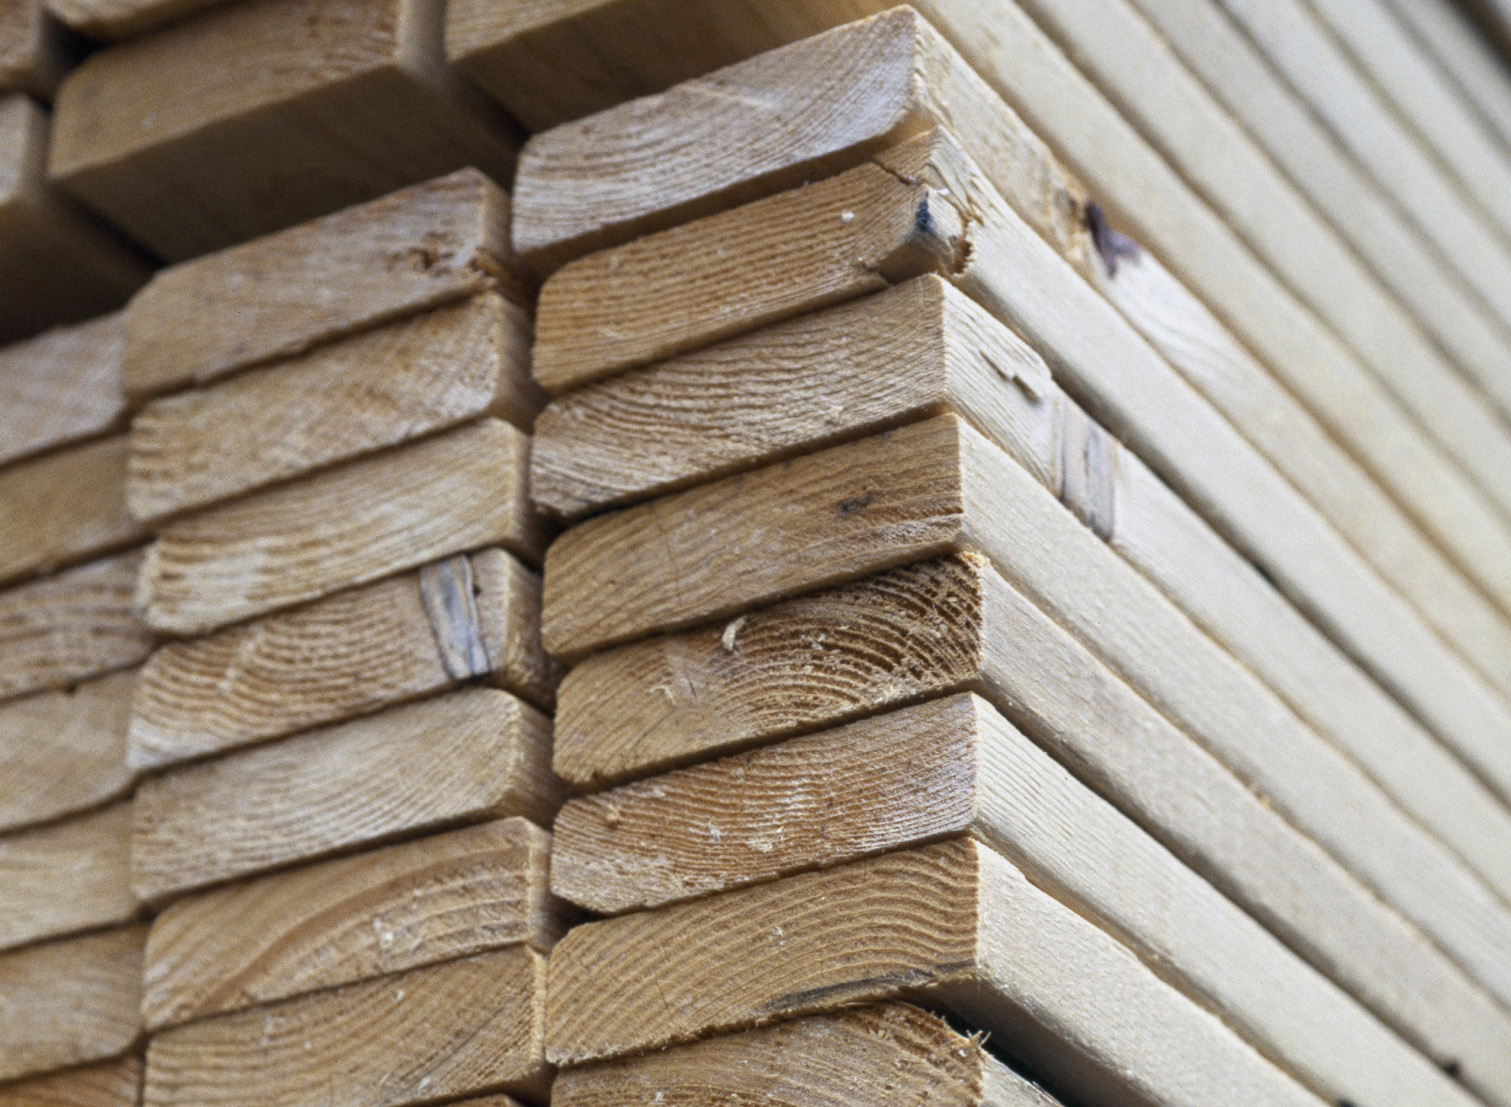 Us and europe hardwood producers focus on the middle east